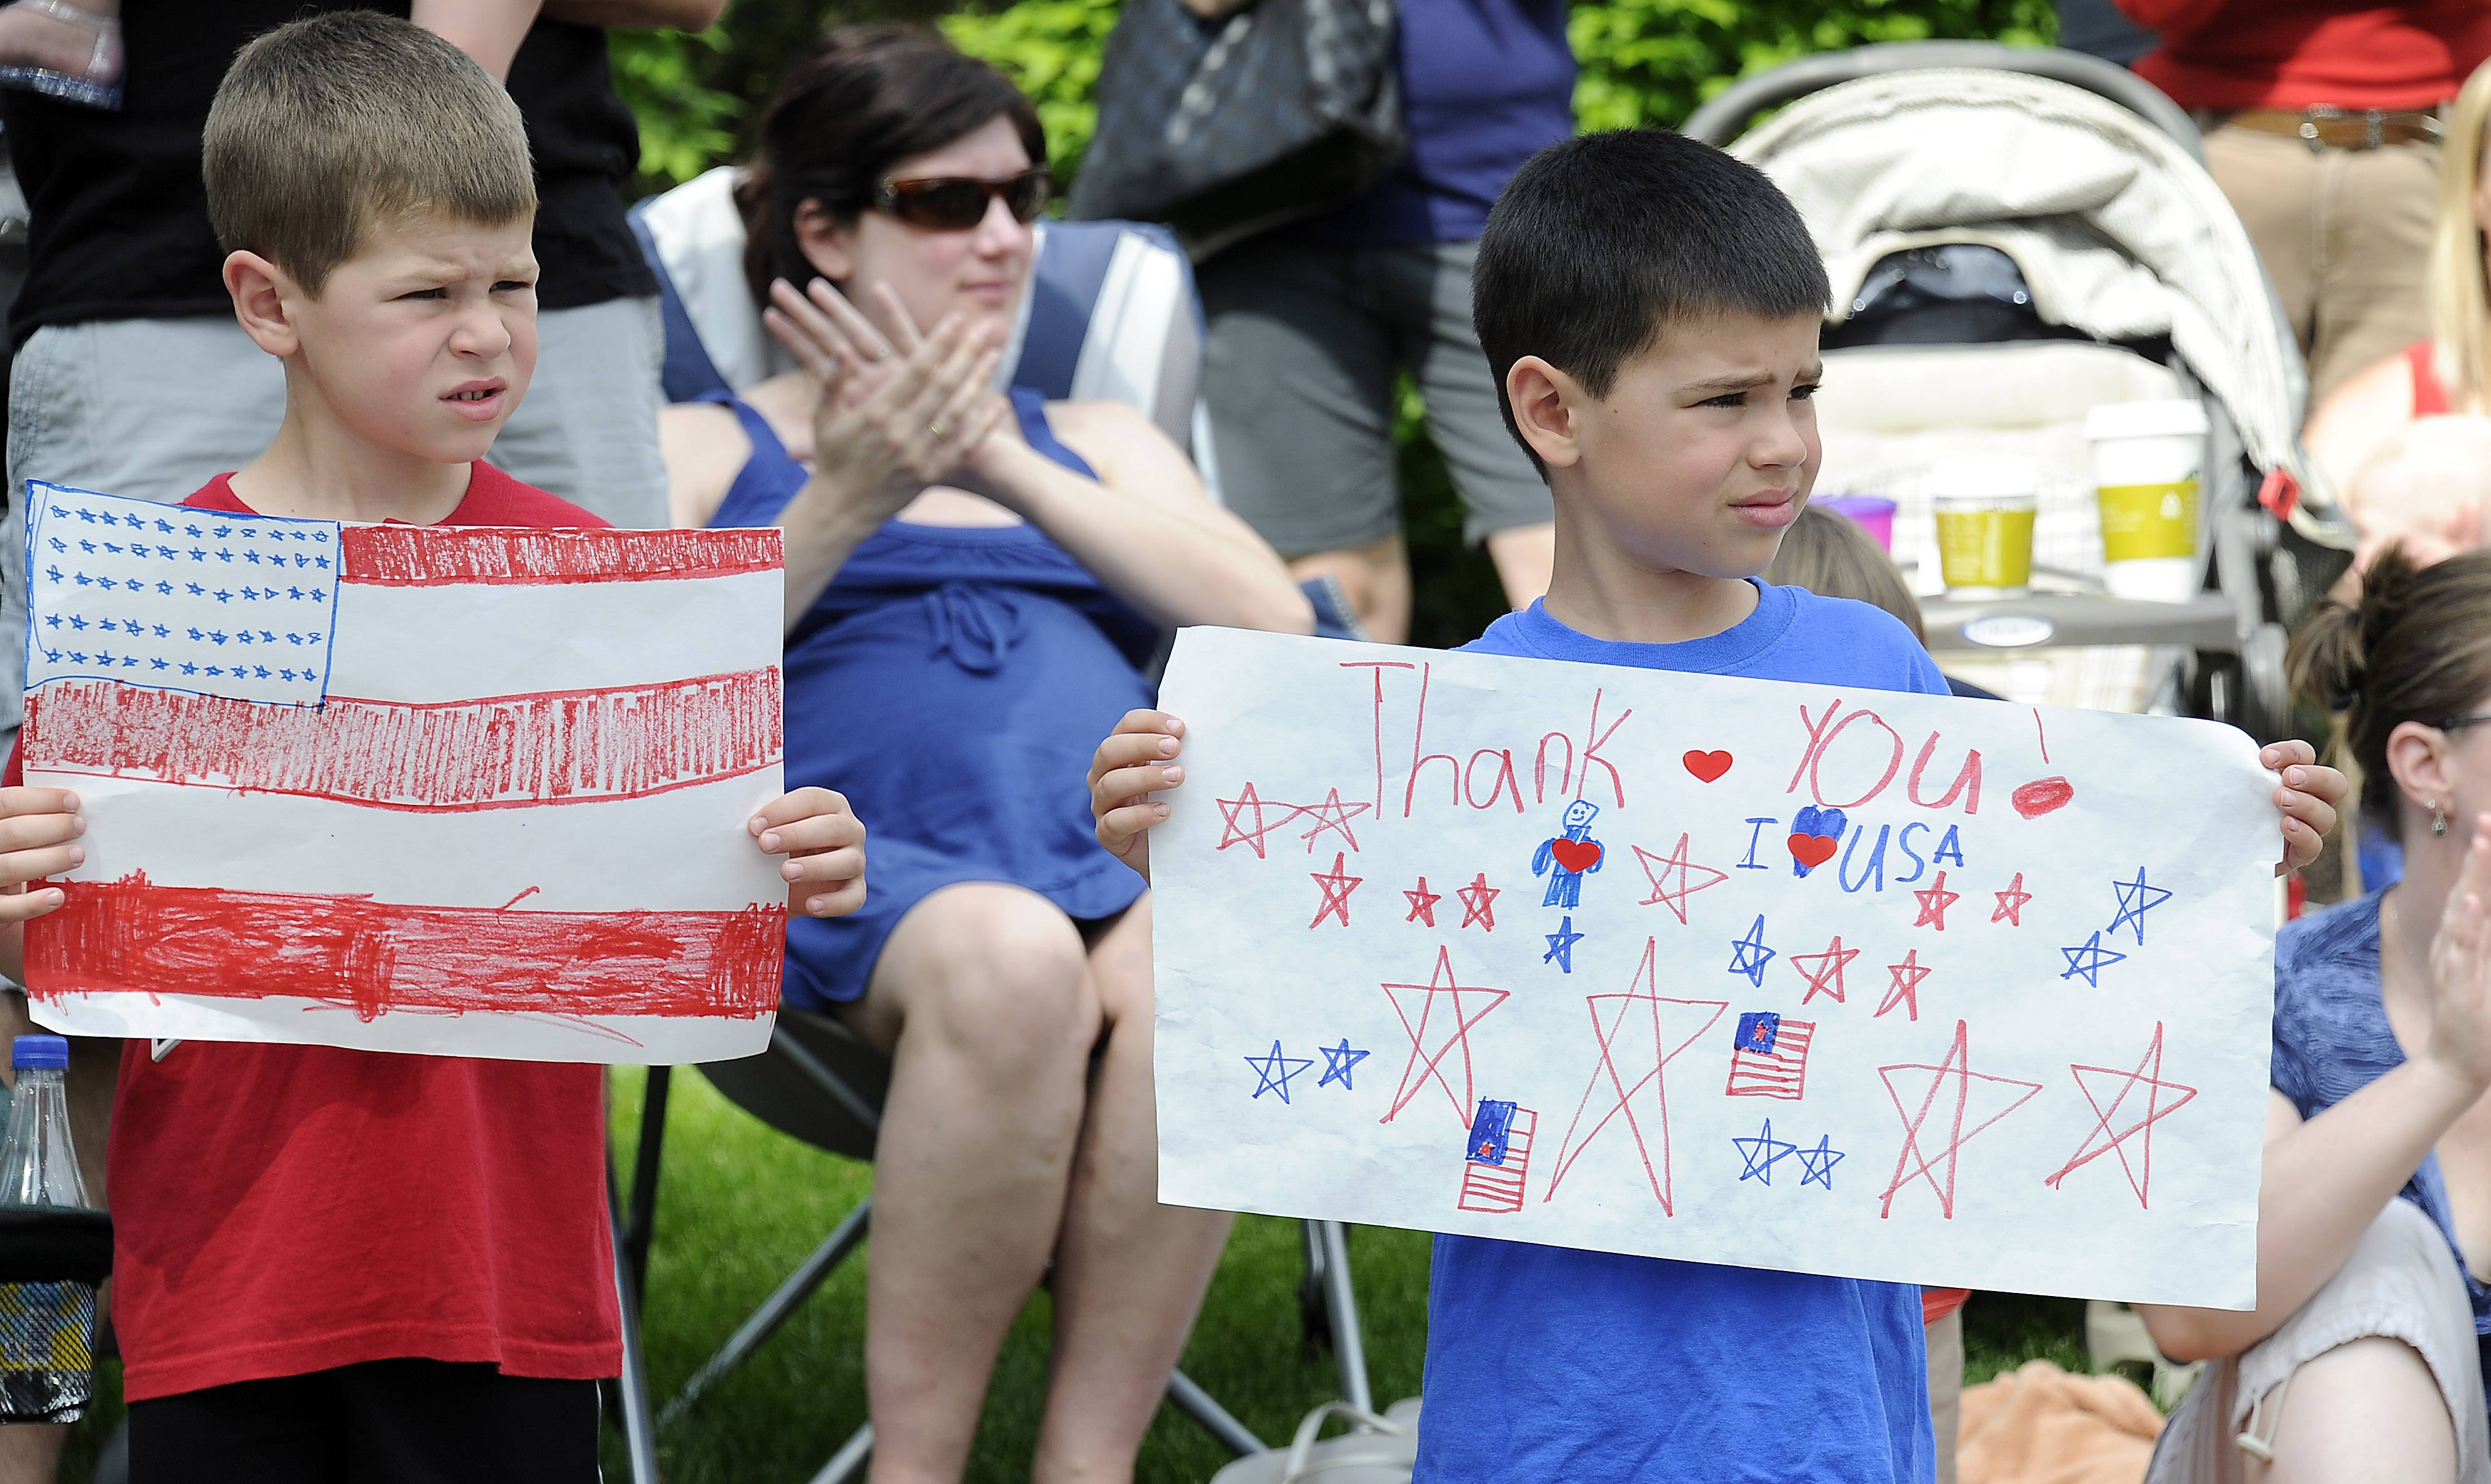 Ben, 5, and Anthony Zebron, 6, show their support at the Arlington Heights Memorial Day parade on Monday.